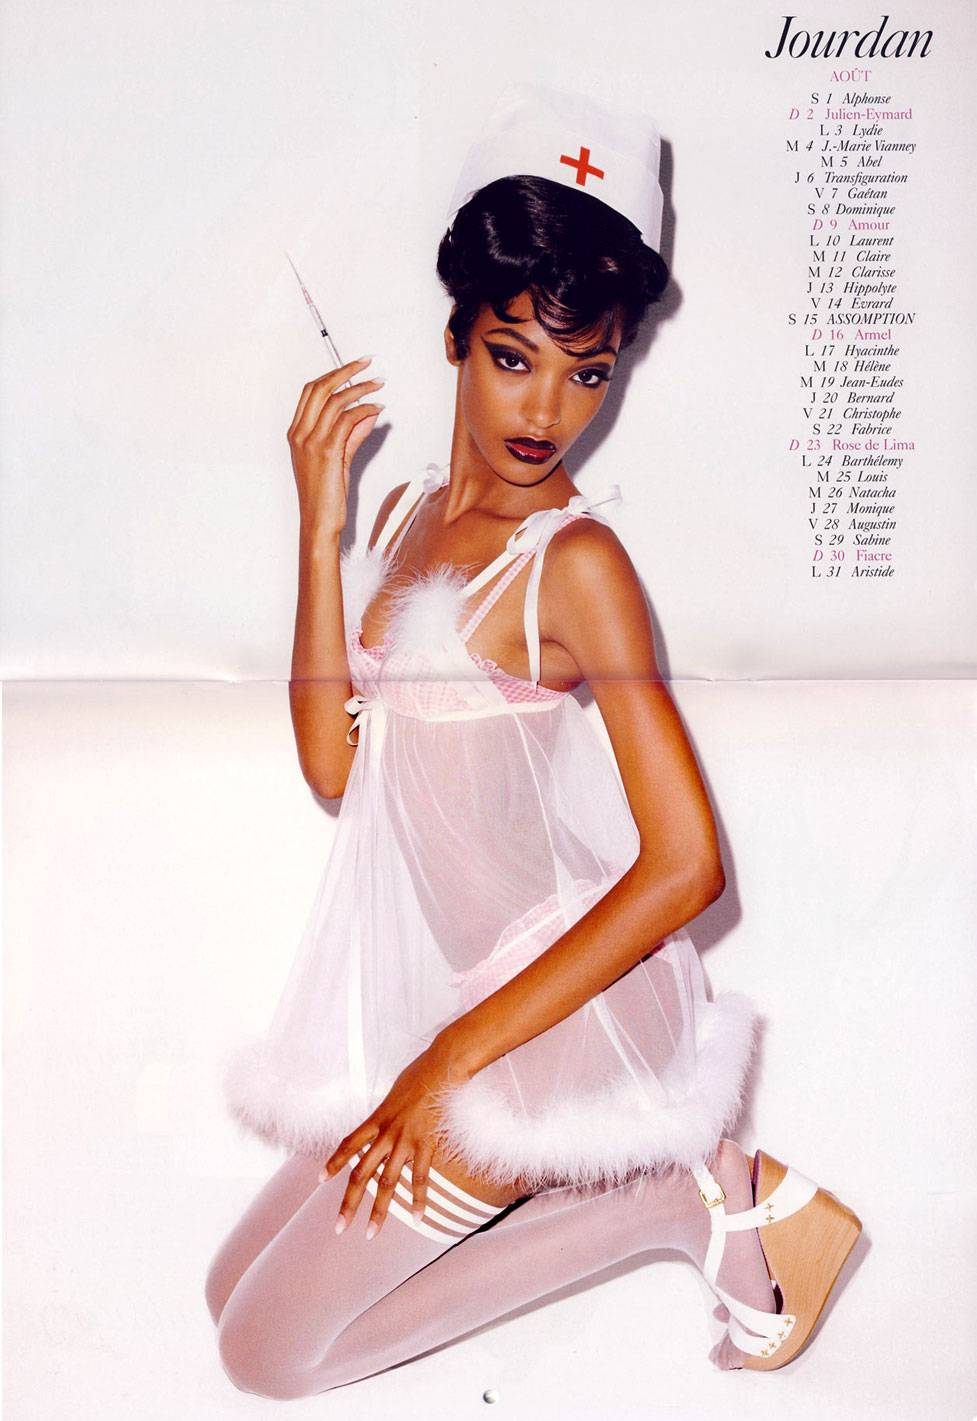 French Vogue 2009 calendar by Terry Richardson - август. Jourdan